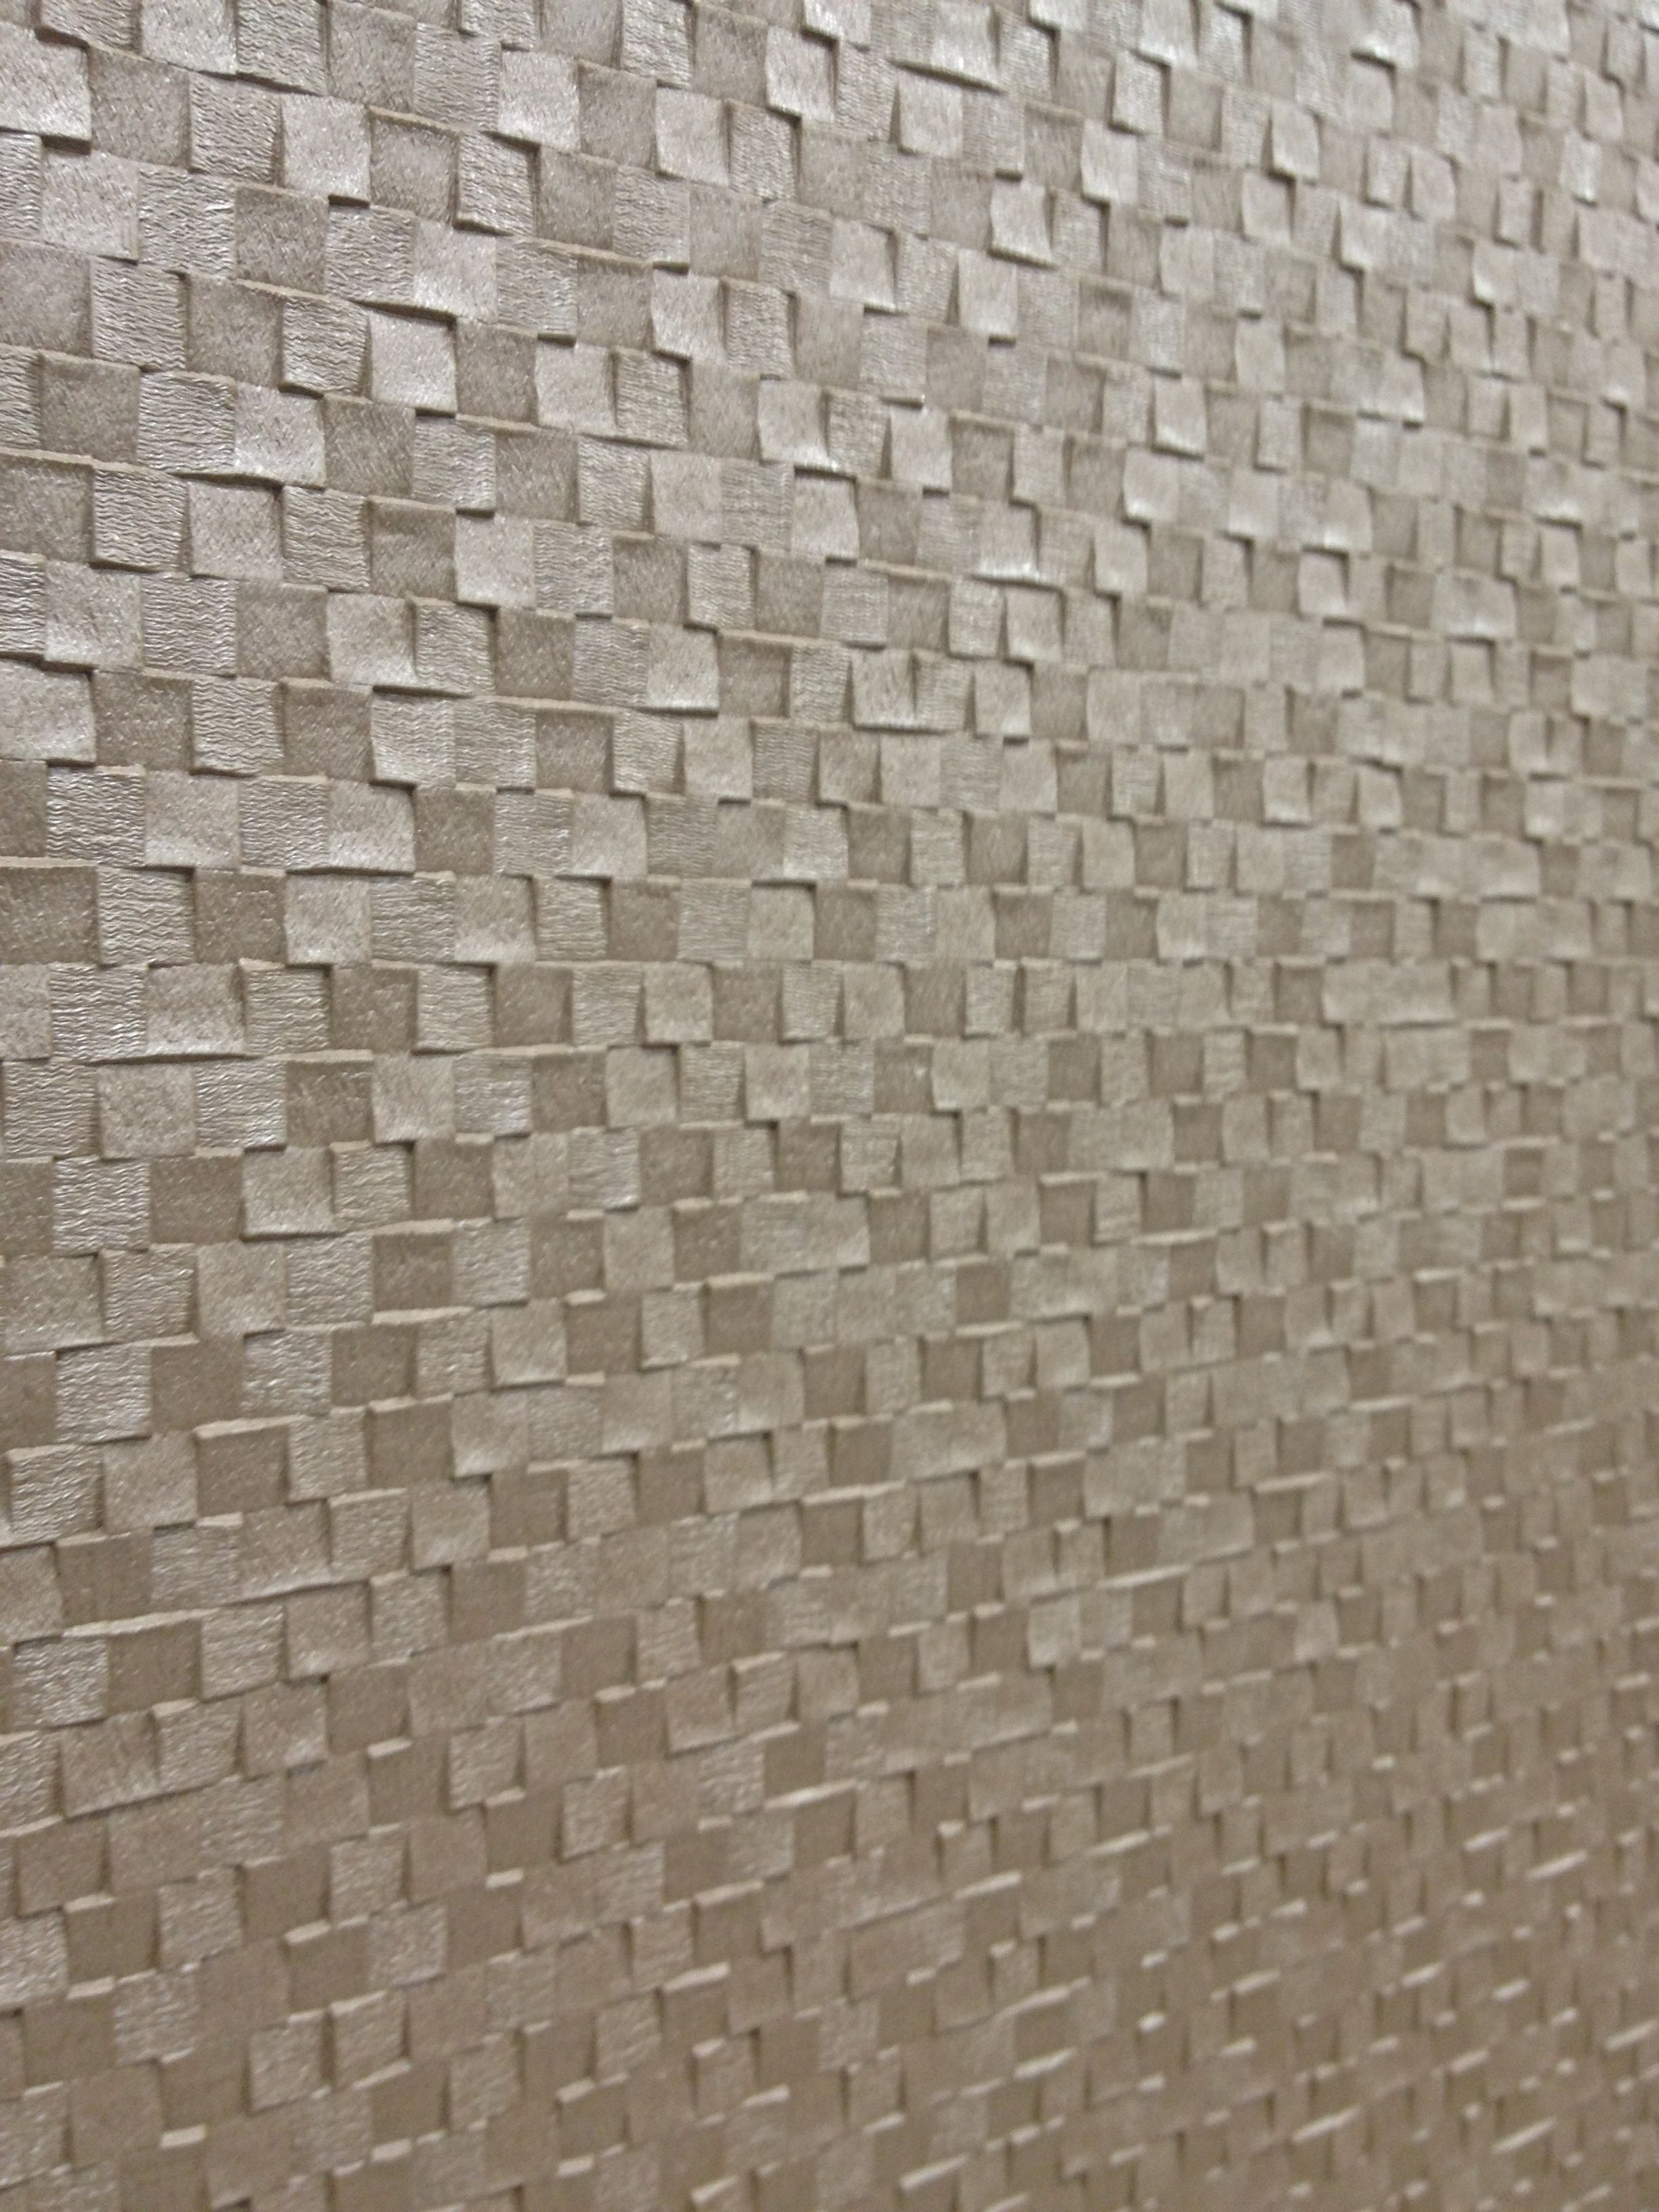 Textured Wallpaper I Dont Like But Saw This At My Dentist Office And It Was AMAZING Cool